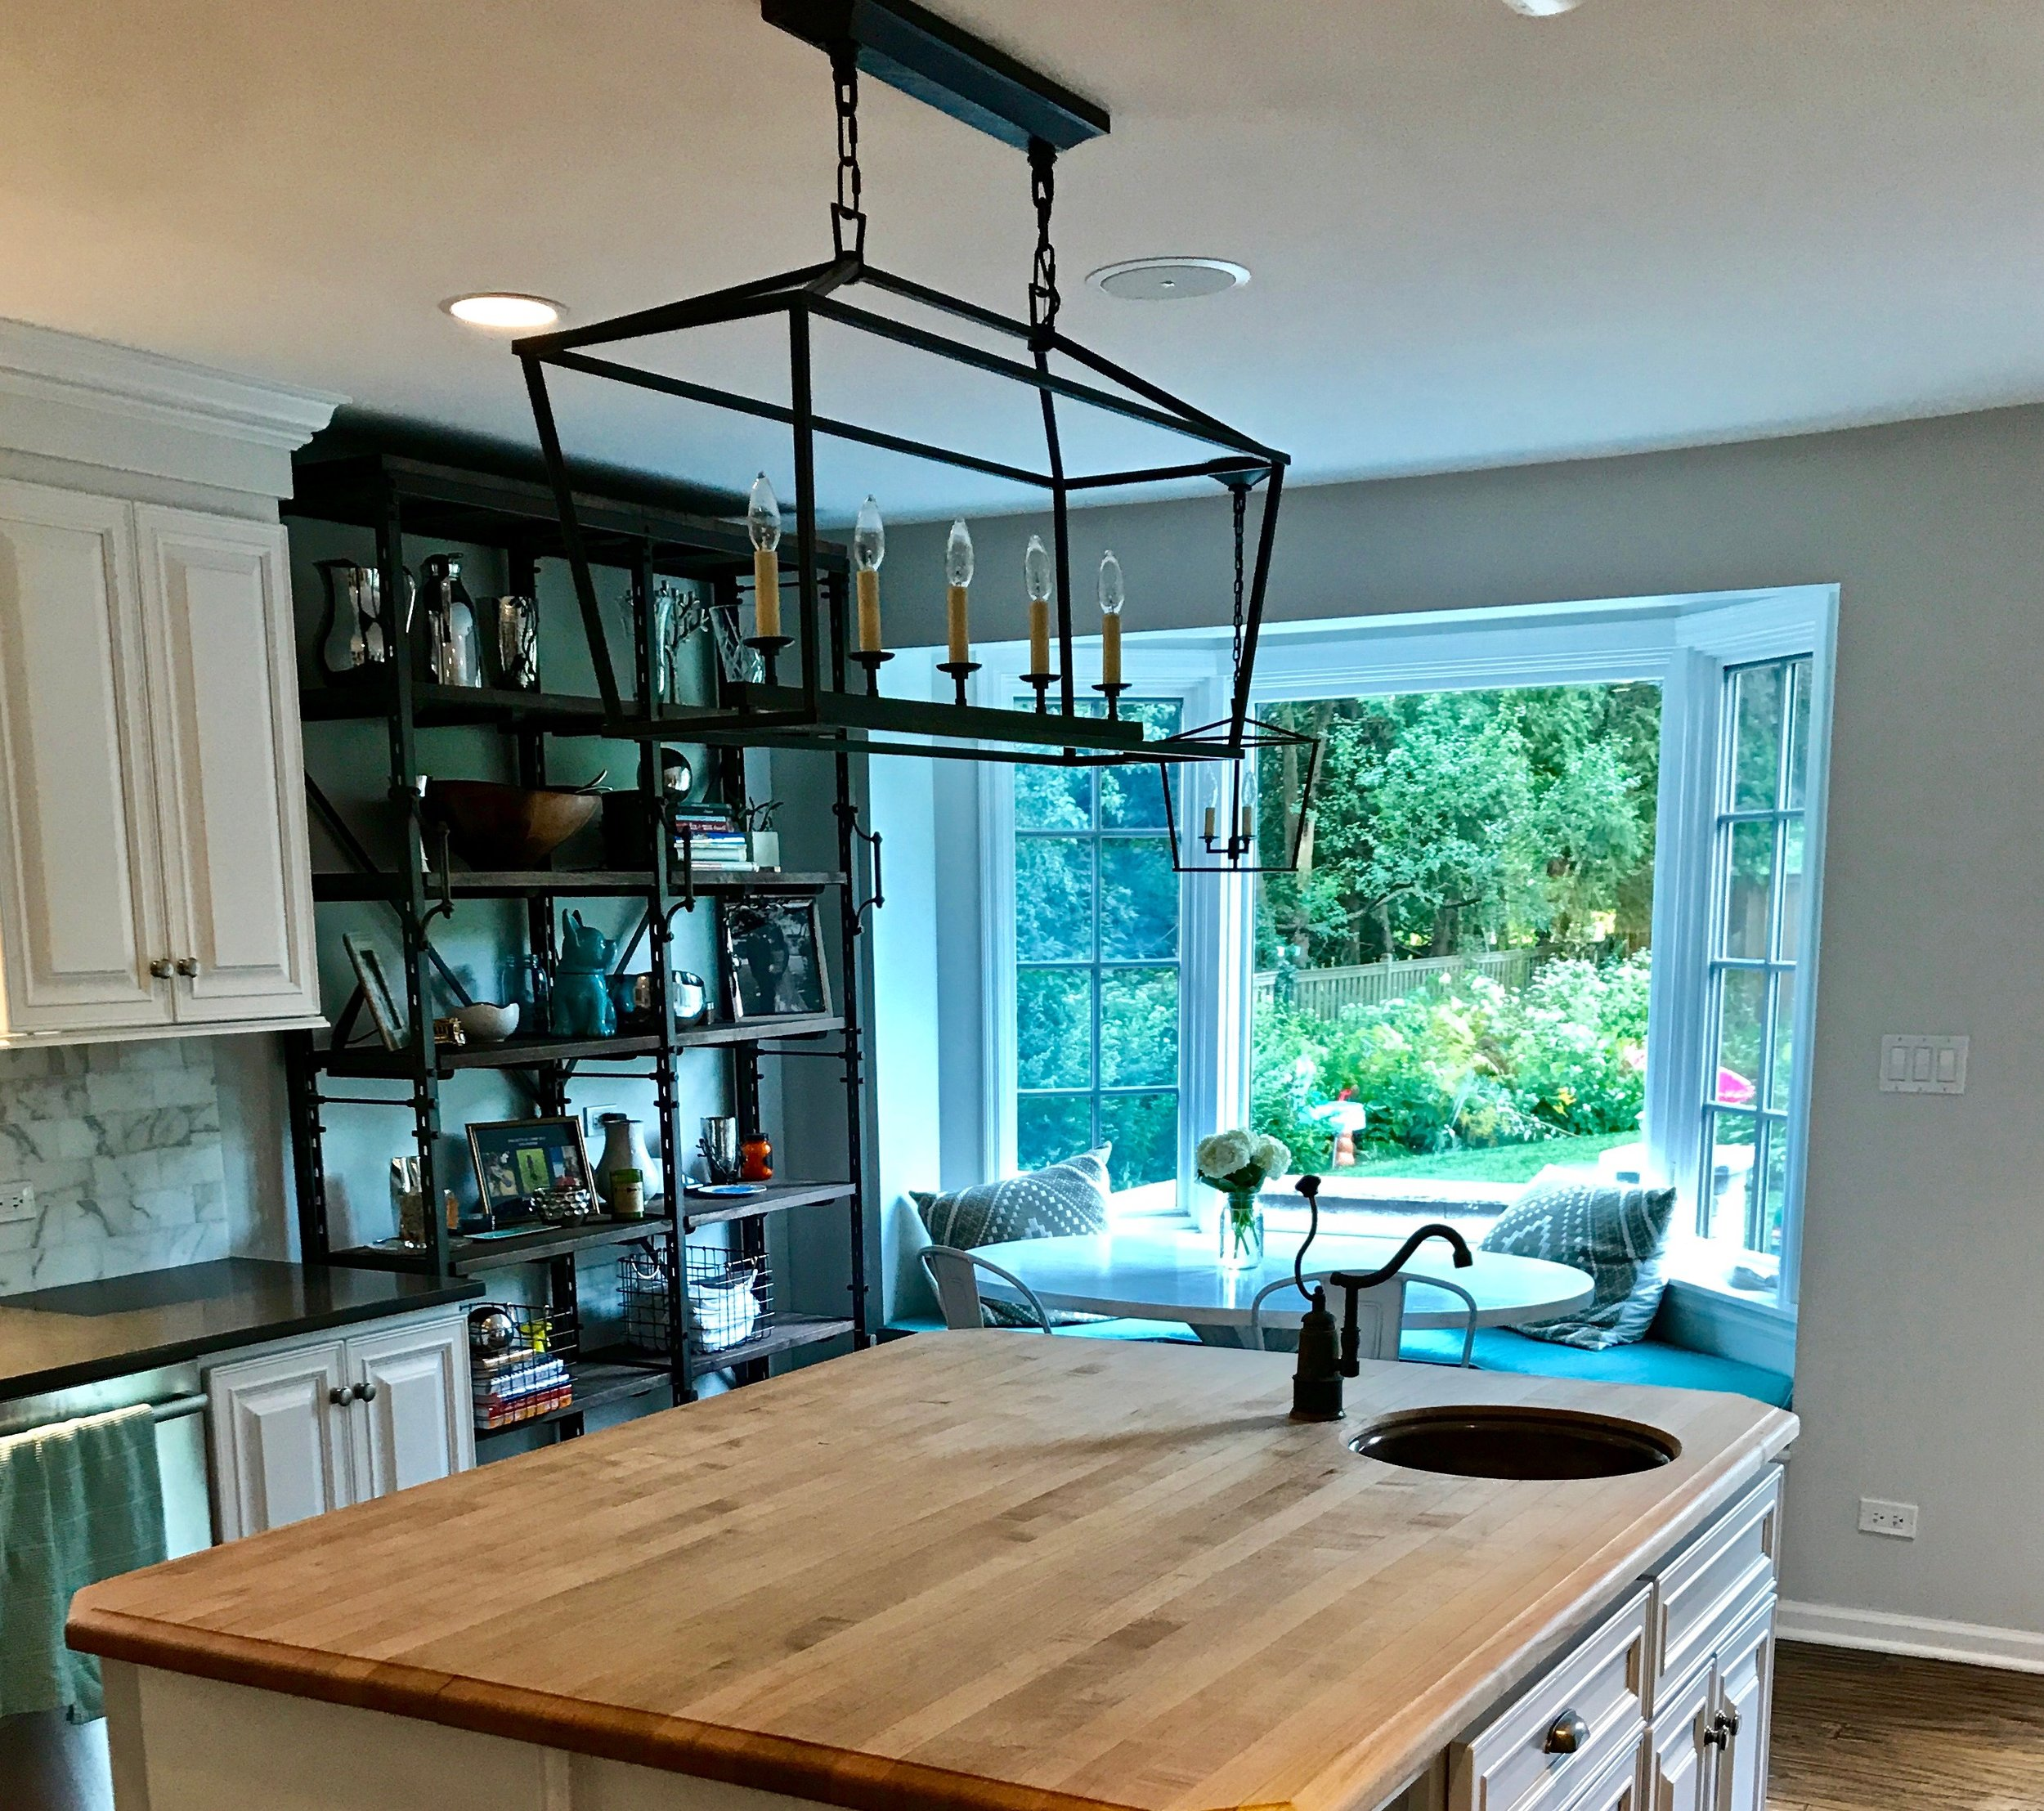 A view of the refinished island top, new light fixtures, and the shelving unit next to the bay window.